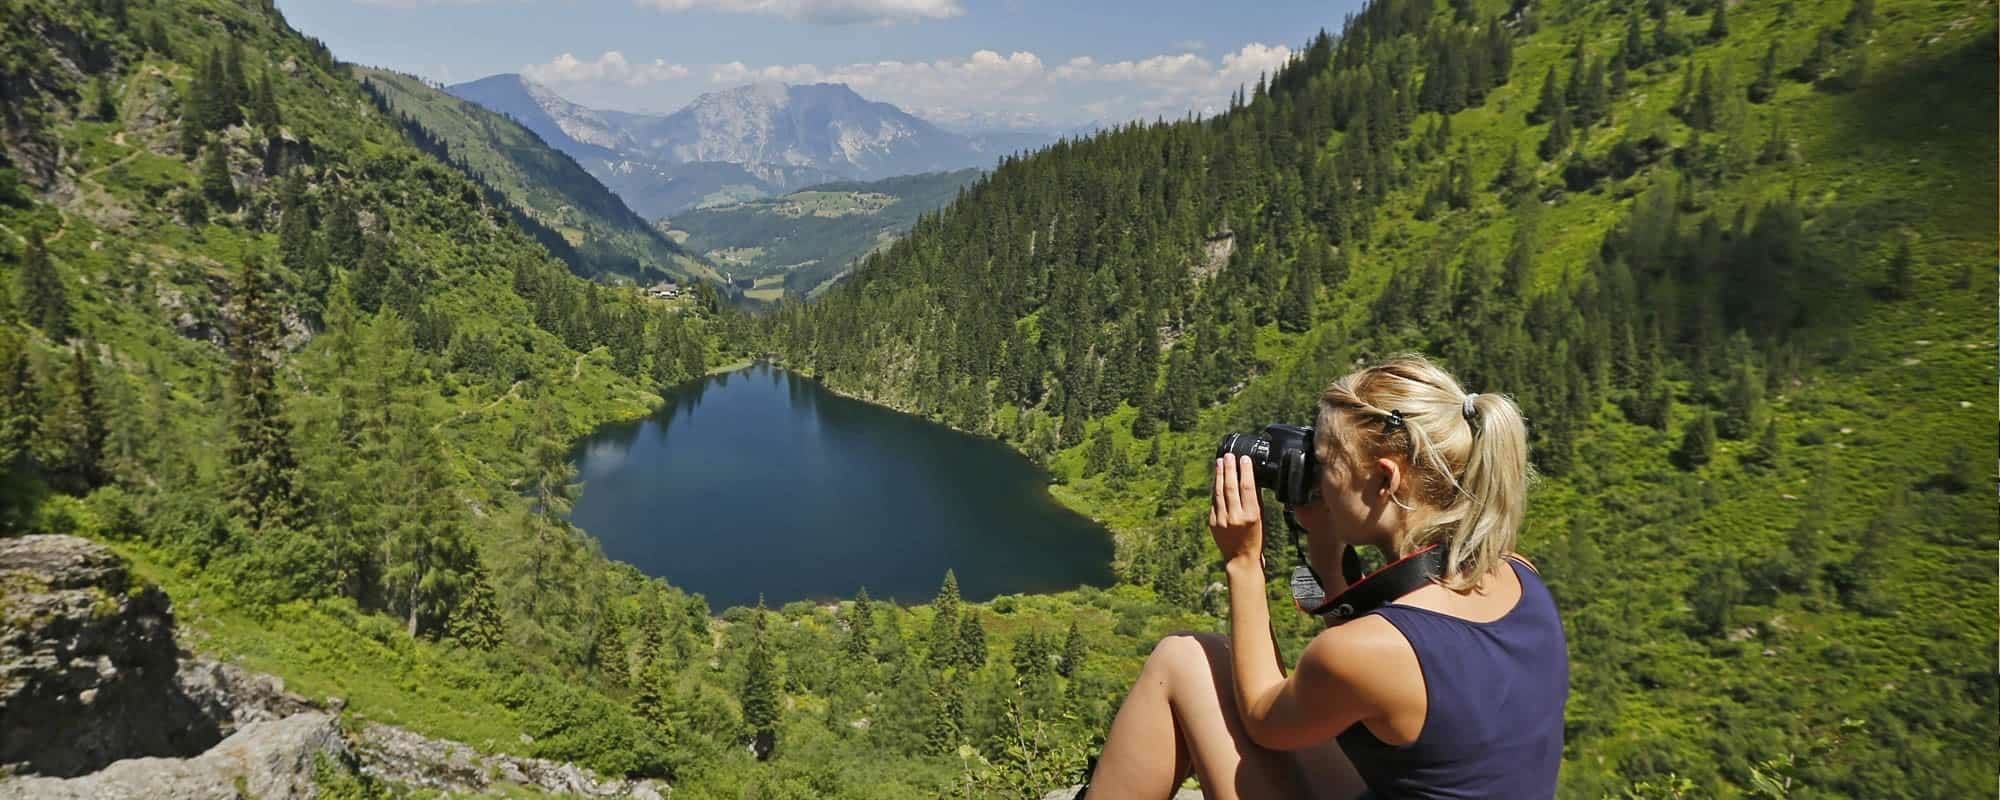 Woman taking a photo during a hike in the Schladming-Dachstein region